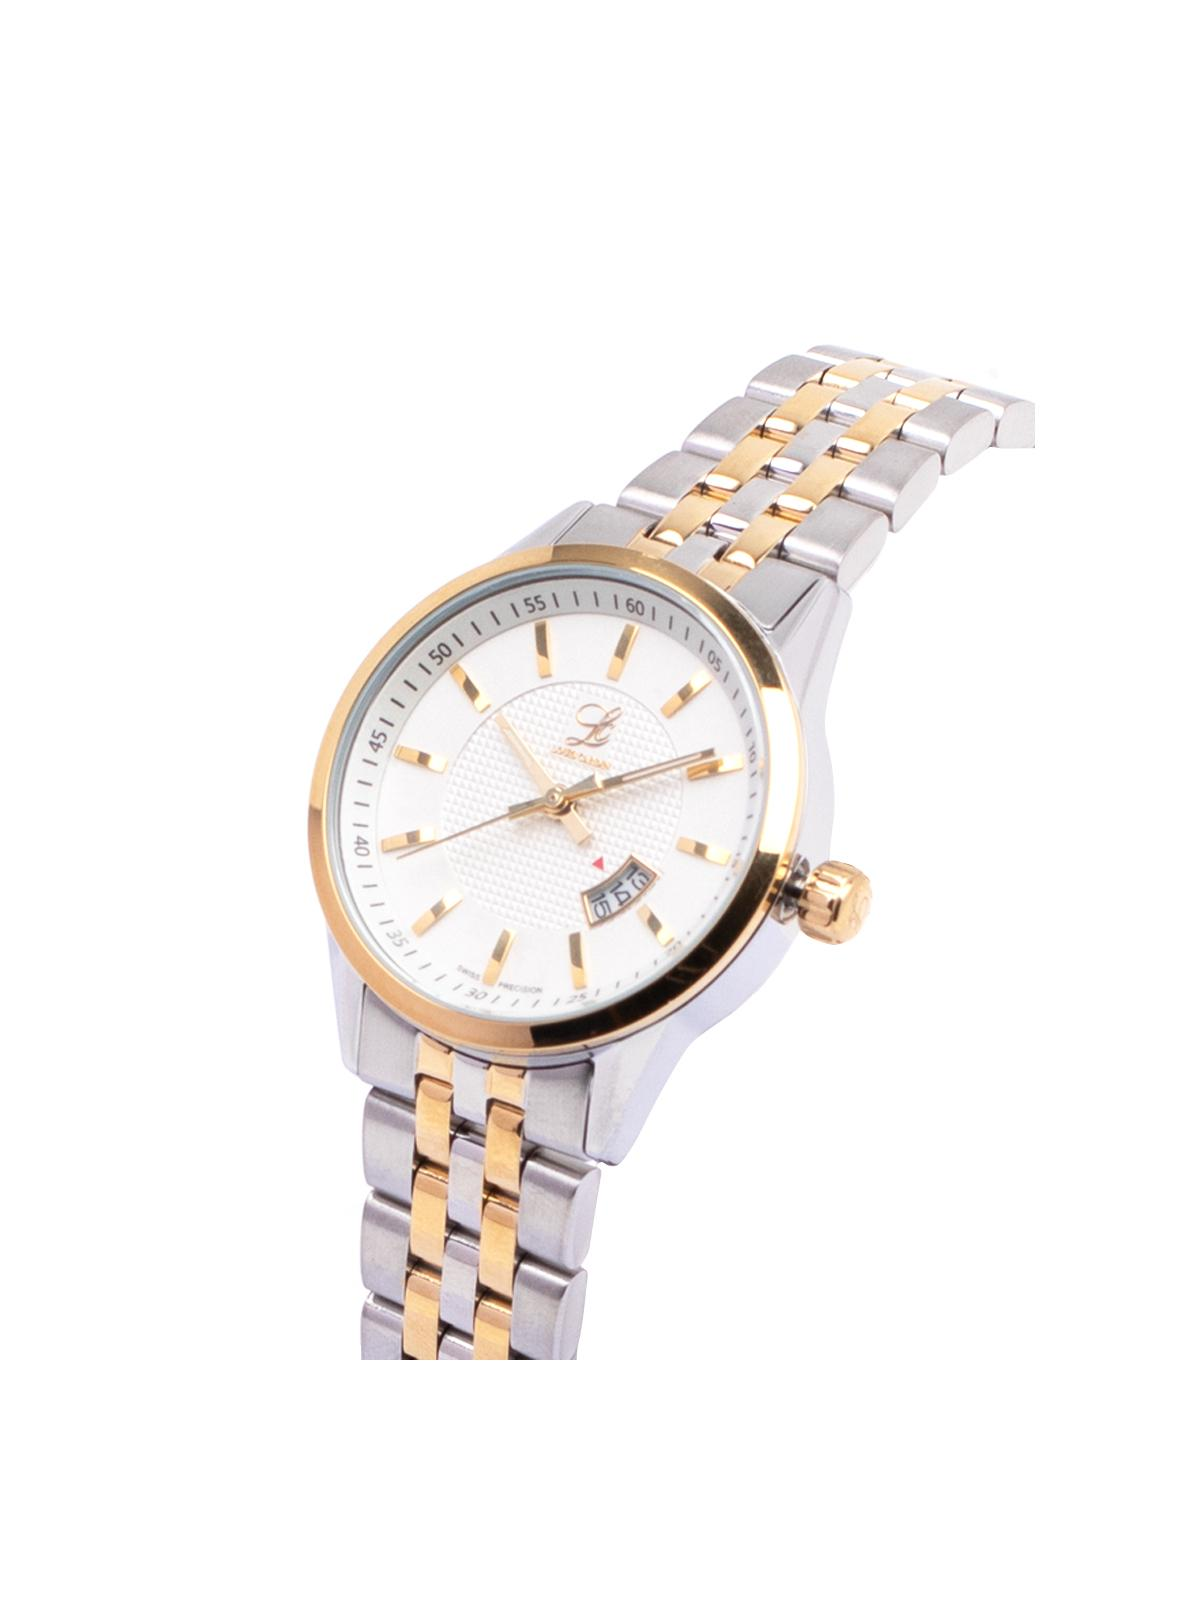 Louis Cardin Stainless Steel Silver Gold White Butterfly Buckle Watch For Women 8823L(3)